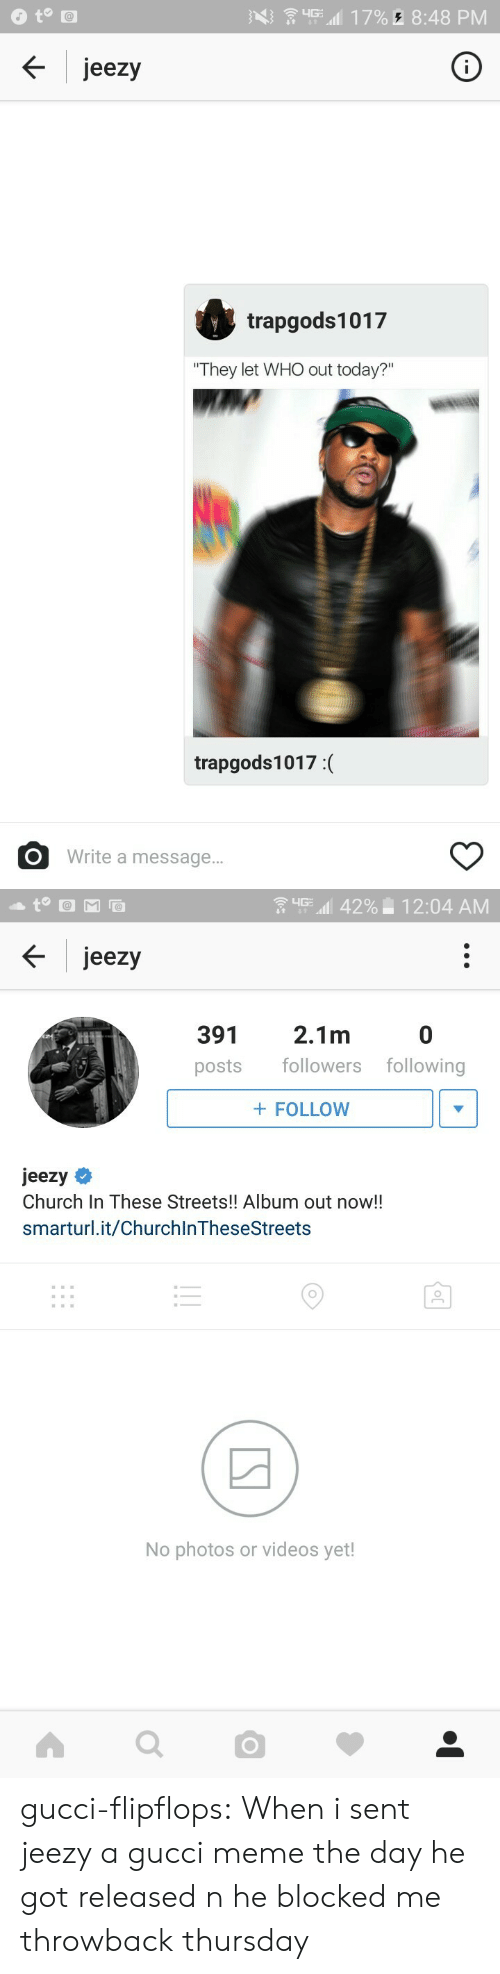 """Throwback Thursday: jeezy  trapgods1017  """"They let WHO out today?""""  trapgods1017:(  O Write a message...   upu.11  42%-12:04 AM  jeezy  391  posts followers following  2.1m  0  FOLLOW  jeezy  Church In These Streets!! Album out now!!  smarturl.it/ChurchlnTheseStreets  No photos or videos yet! gucci-flipflops:  When i sent jeezy a gucci meme the day he got released n he blocked me  throwback thursday"""